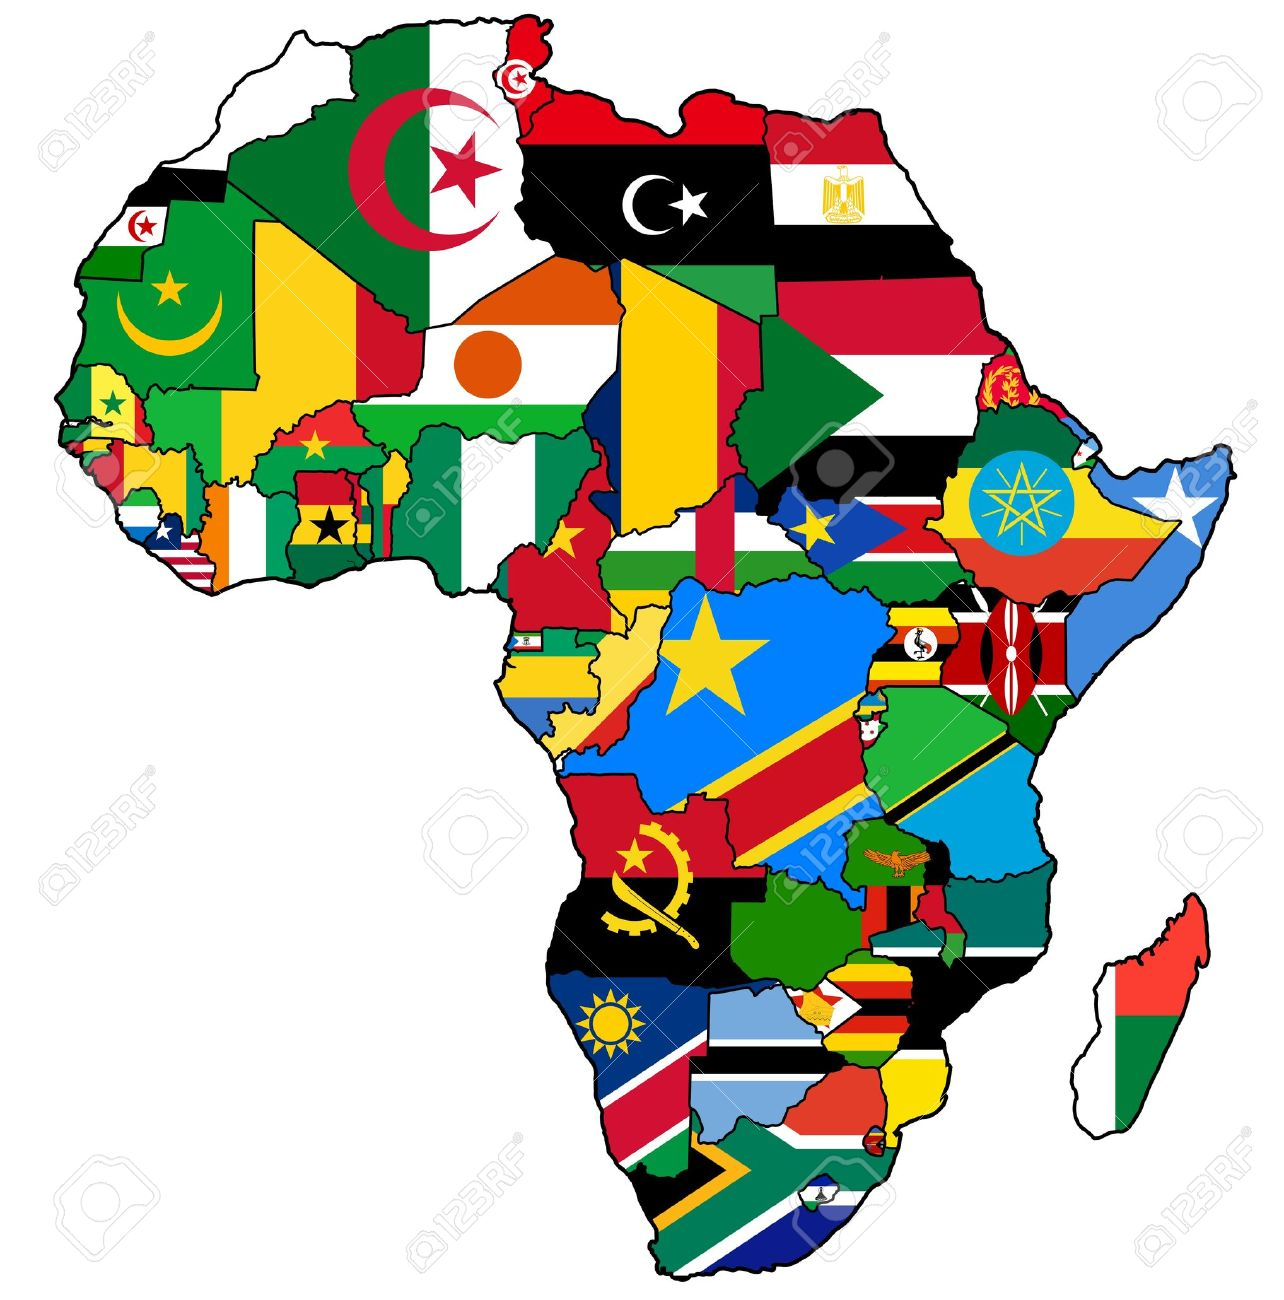 African Union On Actual Vintage Political Map Of Africa With